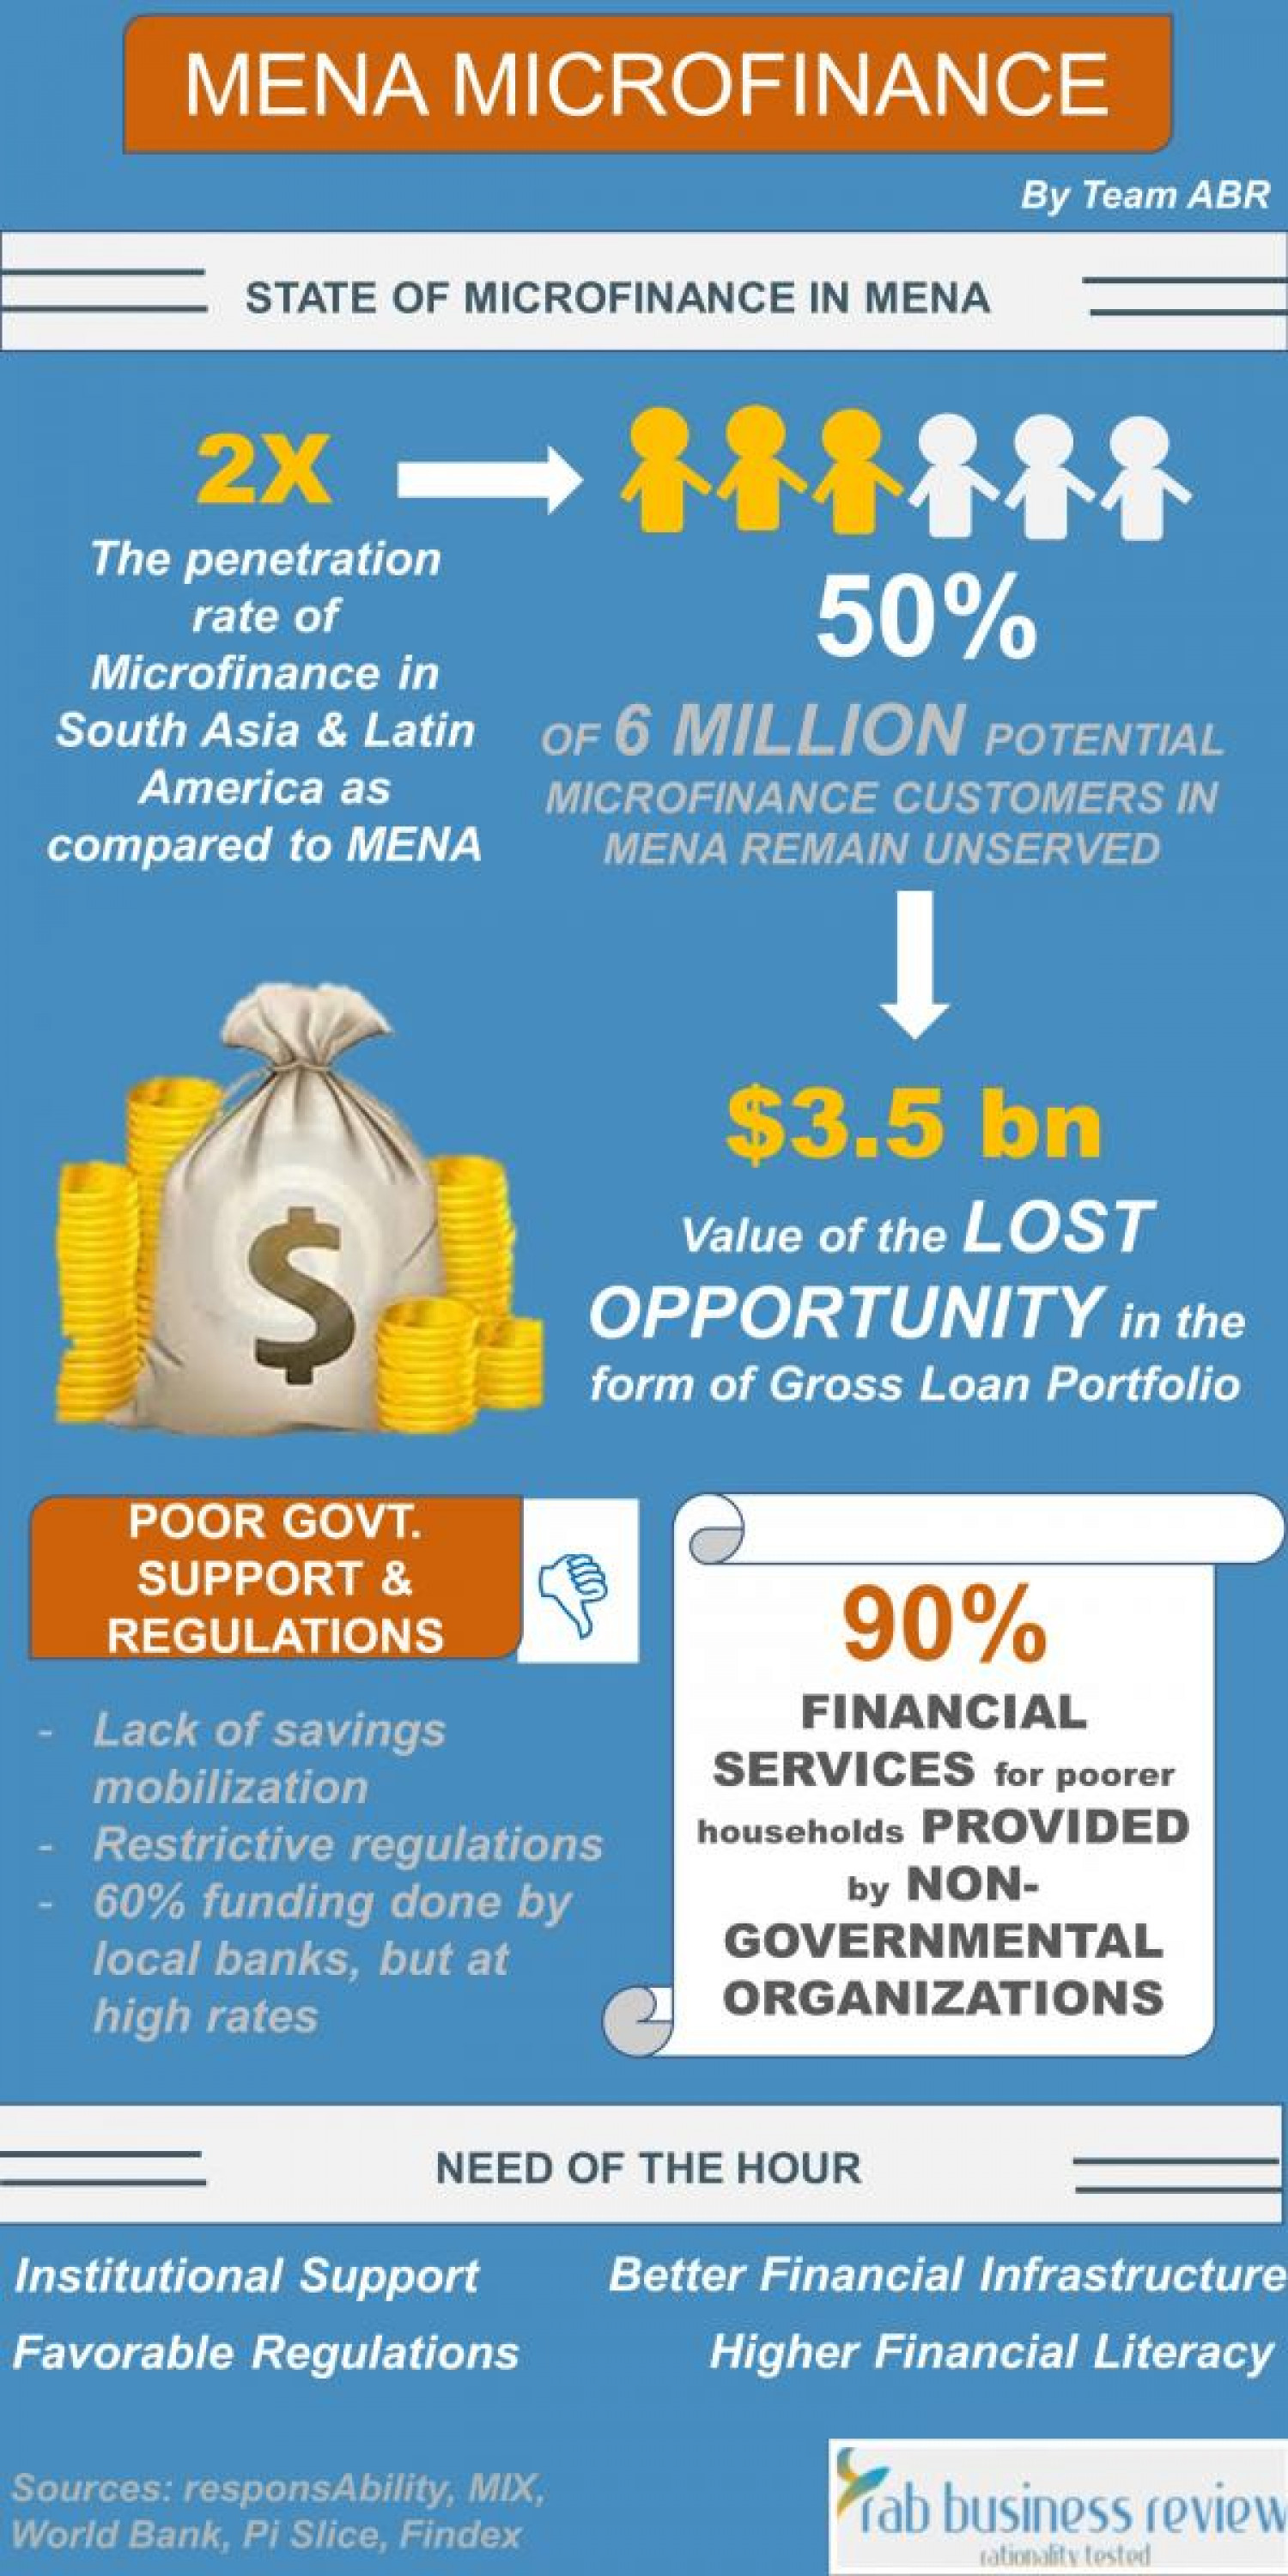 State of Microfinance in MENA Infographic